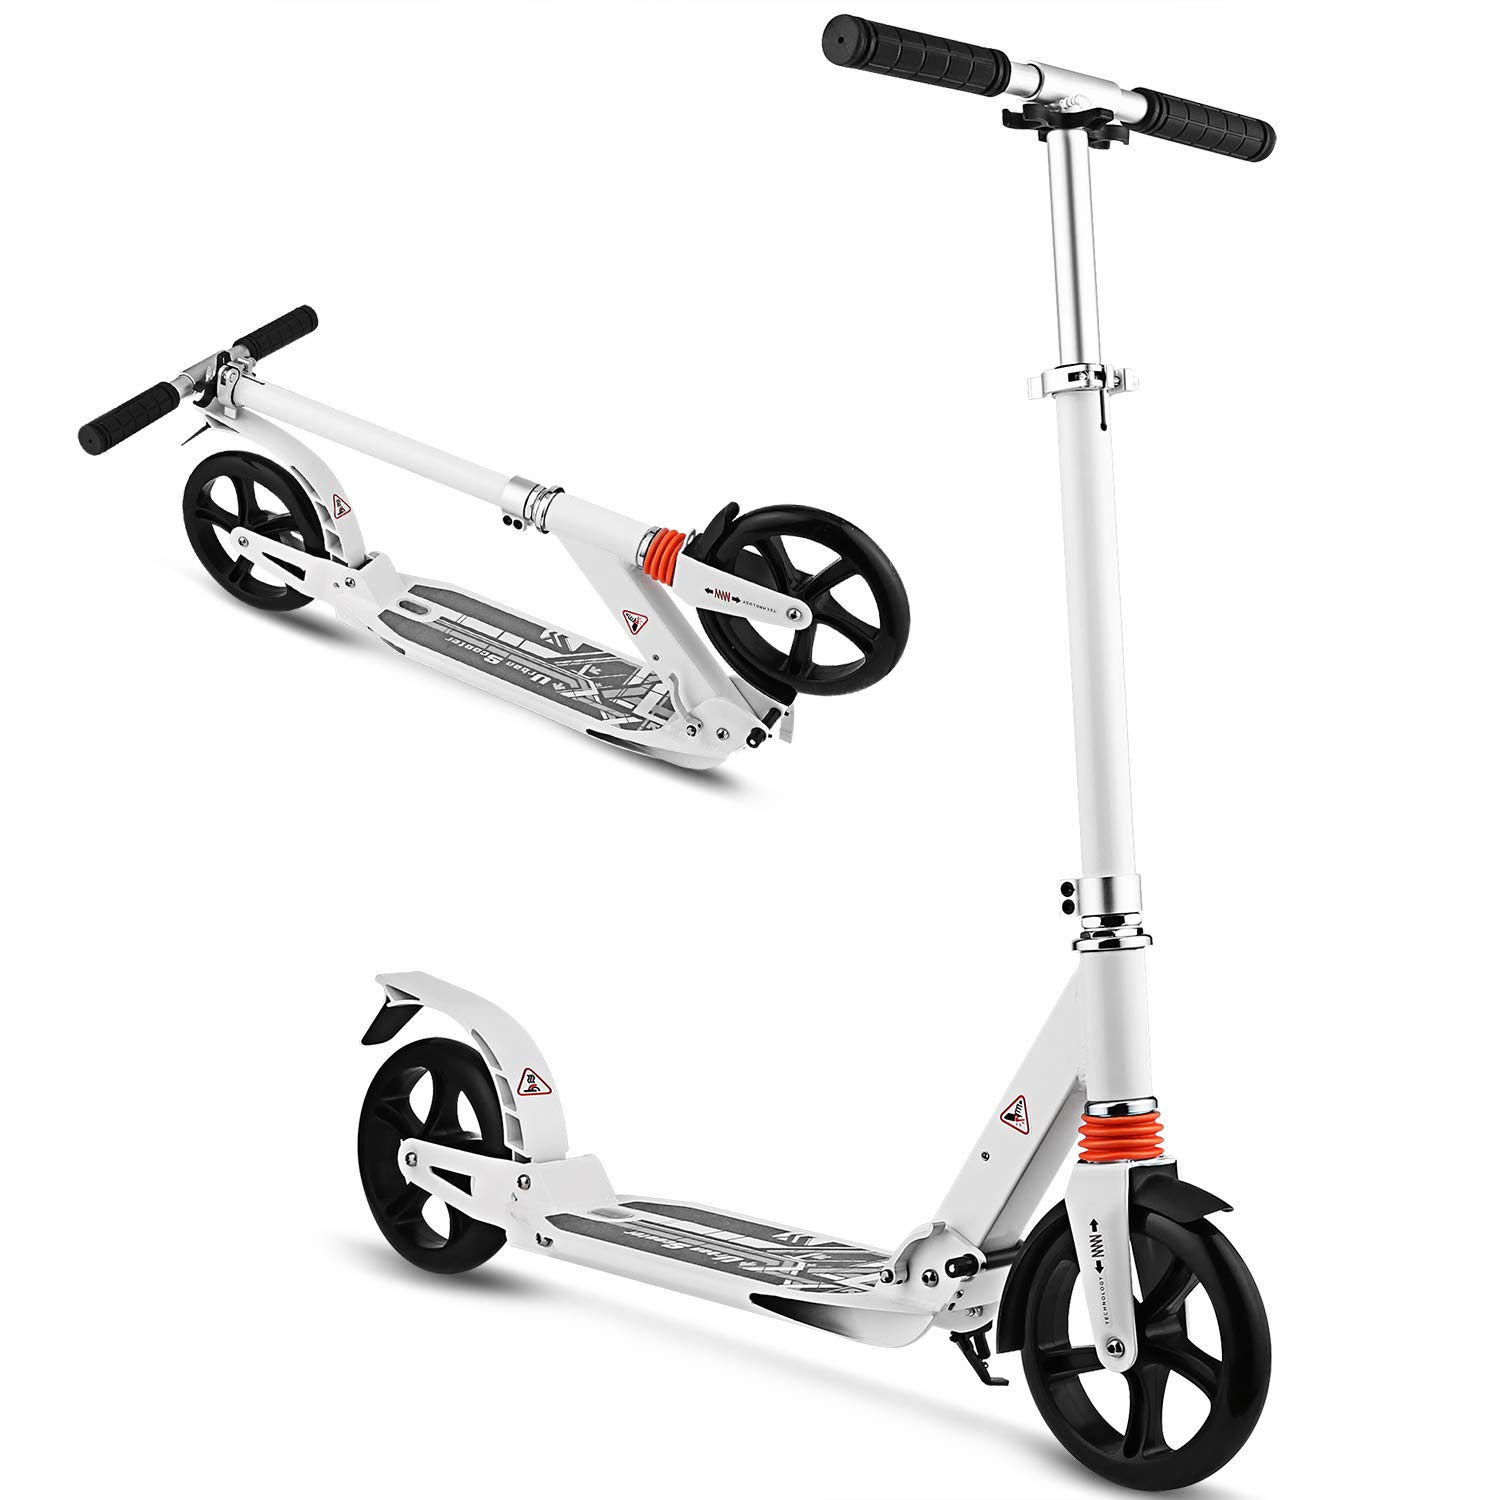 WeSkate Scooter for Adults/Teens, Big Wheels Scooter Easy Folding Kick Scooter Durable Push Scooter Support 220lbs Suitable for Age 12 Up Teens/Adults by WeSkate